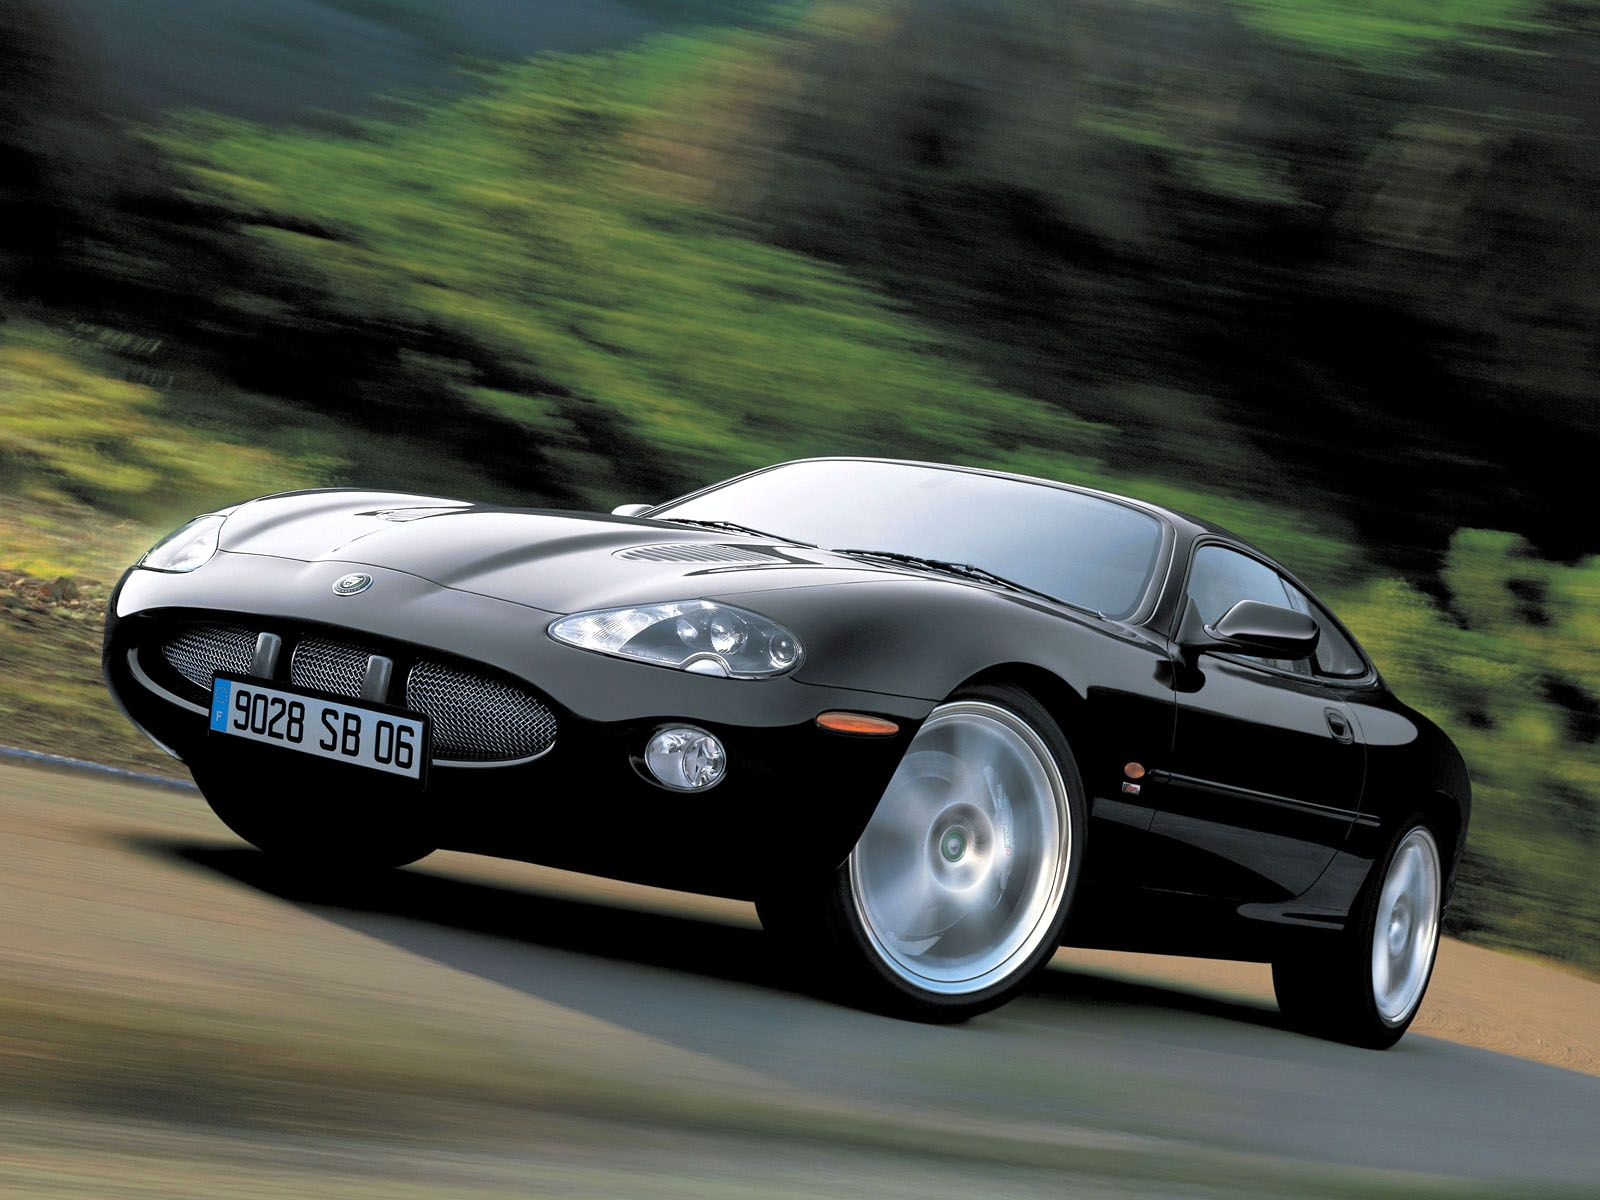 Genial 2012 Jaguar Xk Latest German Model Car